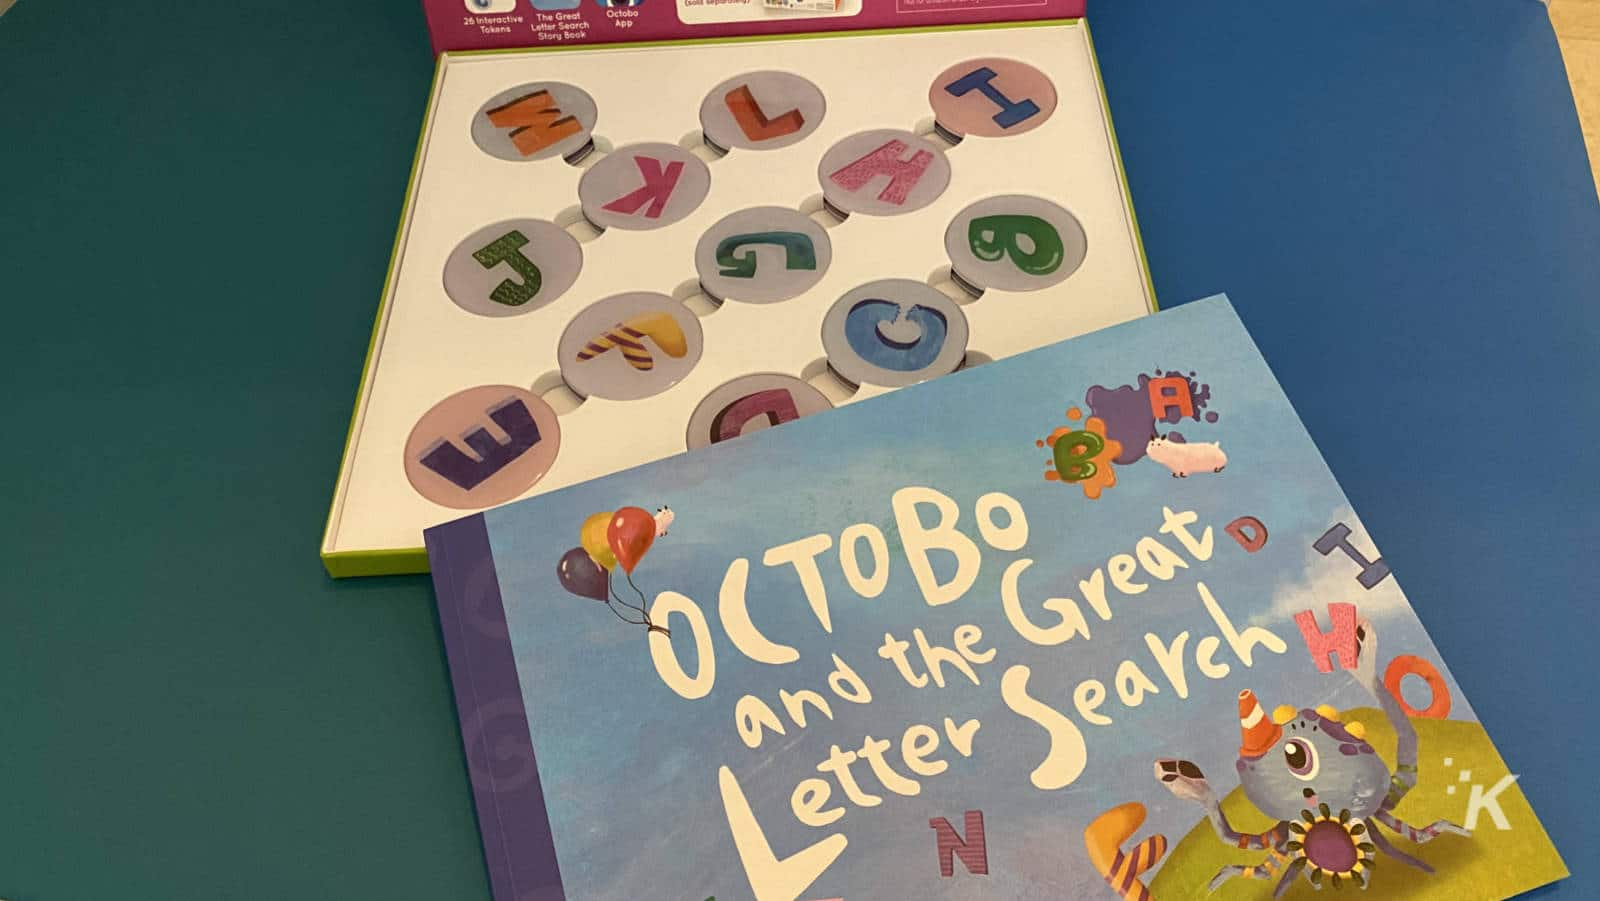 octobo and the great letter search book